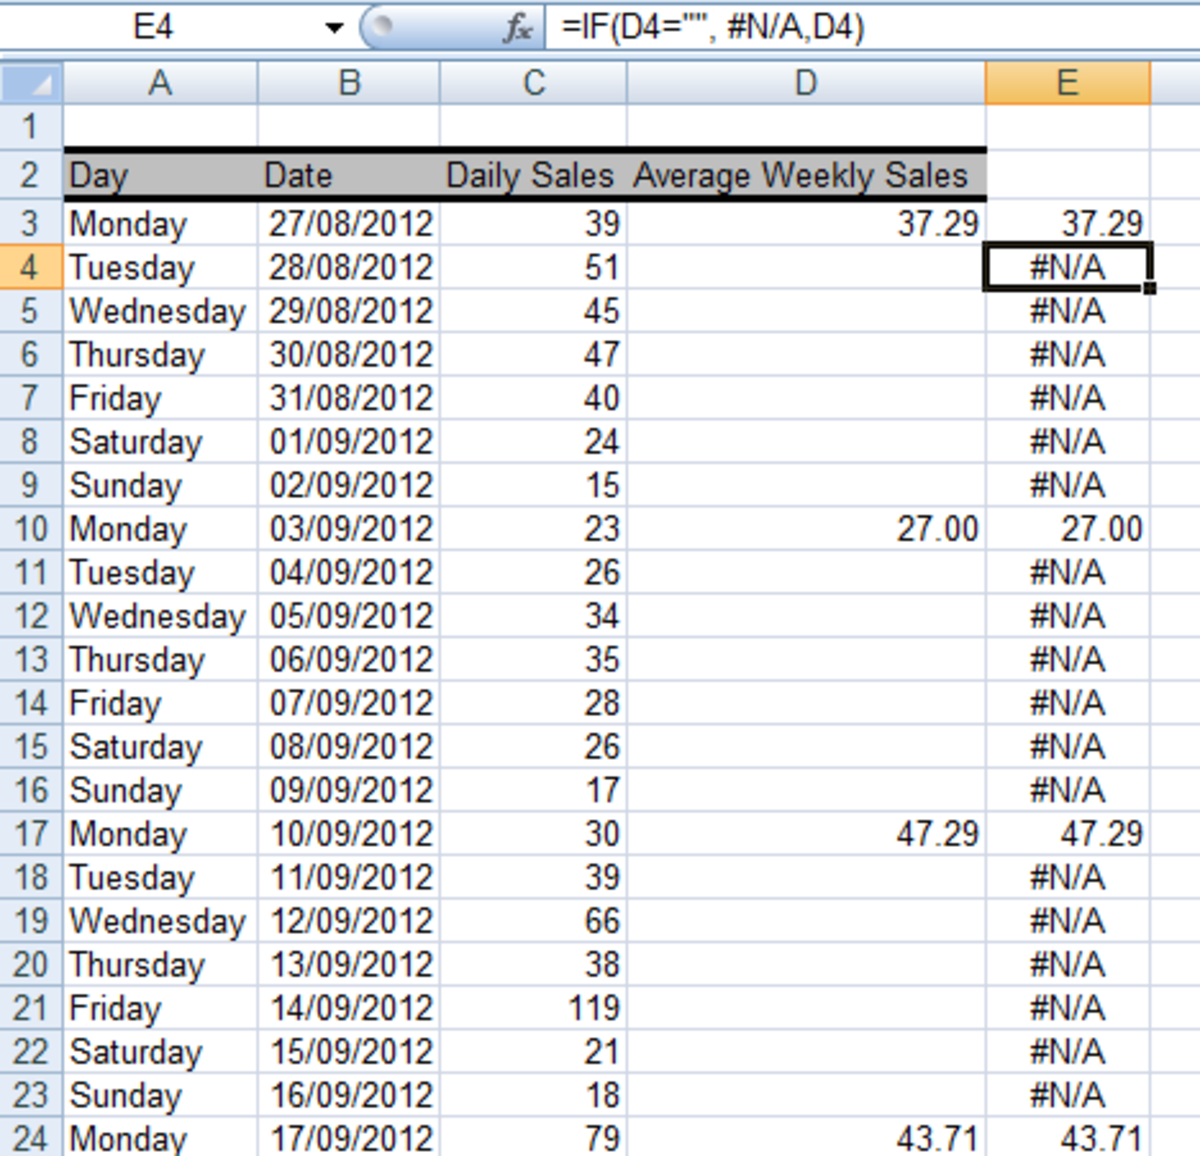 Ediblewildsus  Terrific How To Get Excel  And  To Ignore Empty Cells In A Chart Or  With Hot Using The If Function In A Formula To Convert Empty Cells To Na With Agreeable What Is The Formula For Average In Excel Also Count If Not Blank In Excel In Addition If Then Else Excel Vba And Excel Ppmt Function As Well As Excel Convert Table To List Additionally Business Model Template Excel From Turbofuturecom With Ediblewildsus  Hot How To Get Excel  And  To Ignore Empty Cells In A Chart Or  With Agreeable Using The If Function In A Formula To Convert Empty Cells To Na And Terrific What Is The Formula For Average In Excel Also Count If Not Blank In Excel In Addition If Then Else Excel Vba From Turbofuturecom